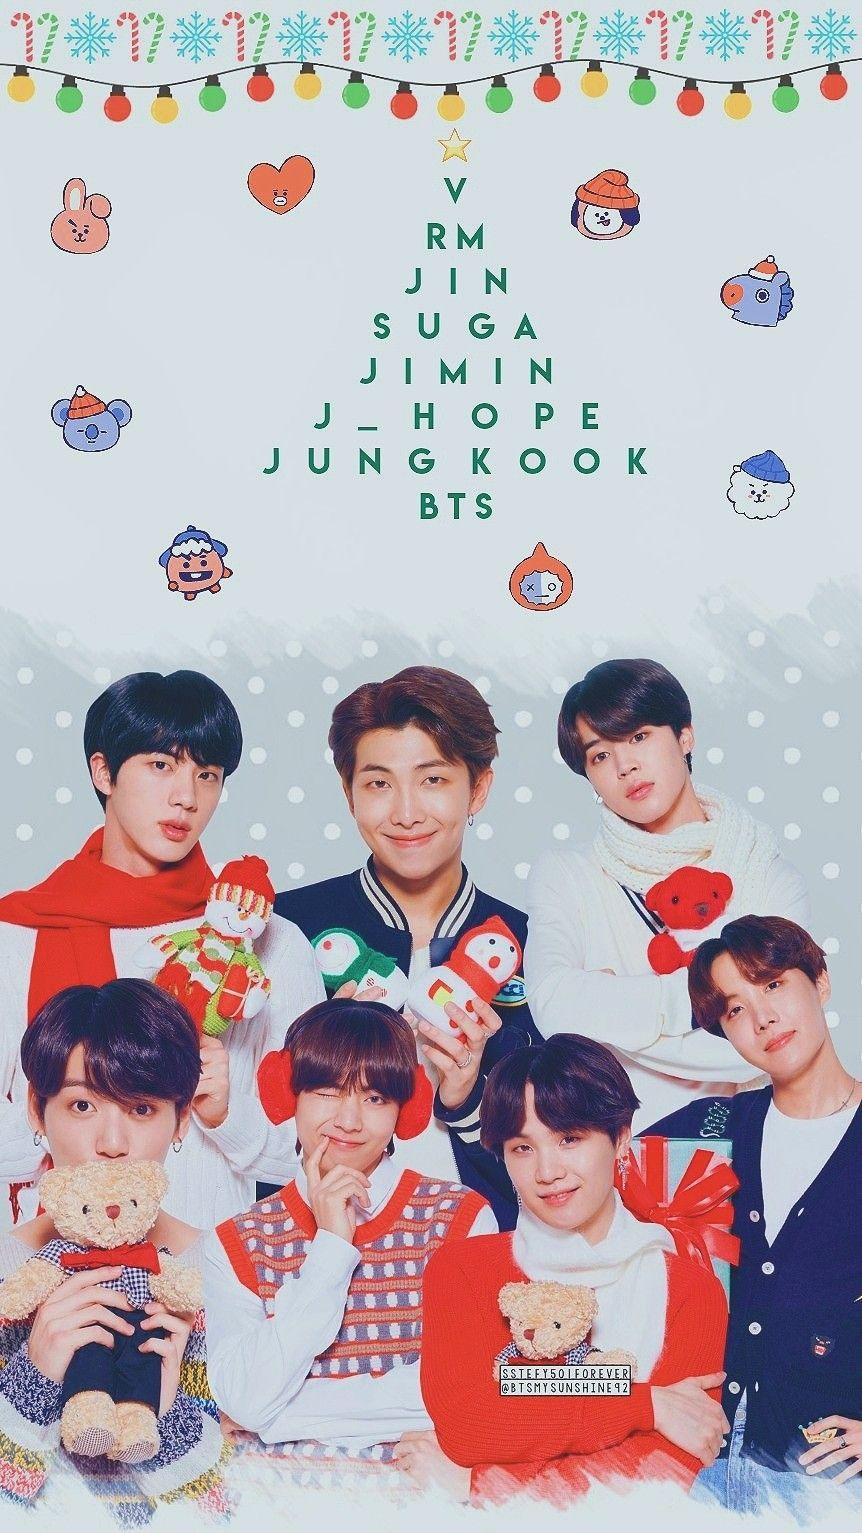 Bts Christmas Wallpapers Top Free Bts Christmas Backgrounds Wallpaperaccess